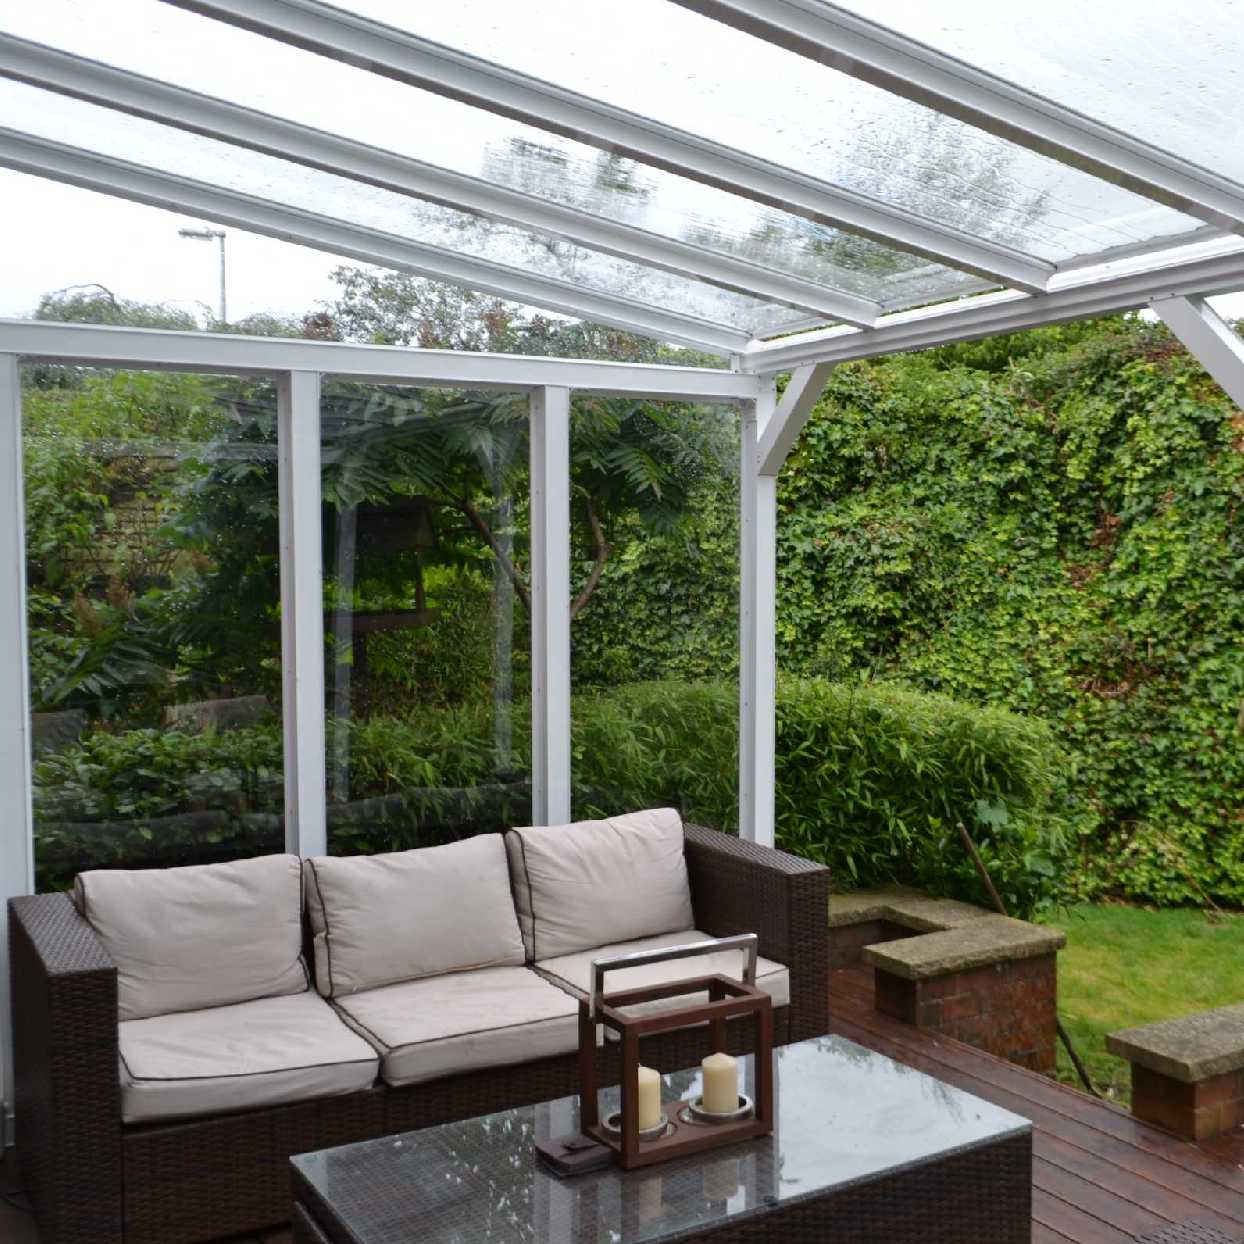 Great selection of Omega Smart White Lean-To Canopy with 16mm Polycarbonate Glazing - 6.0m (W) x 2.5m (P), (3) Supporting Posts